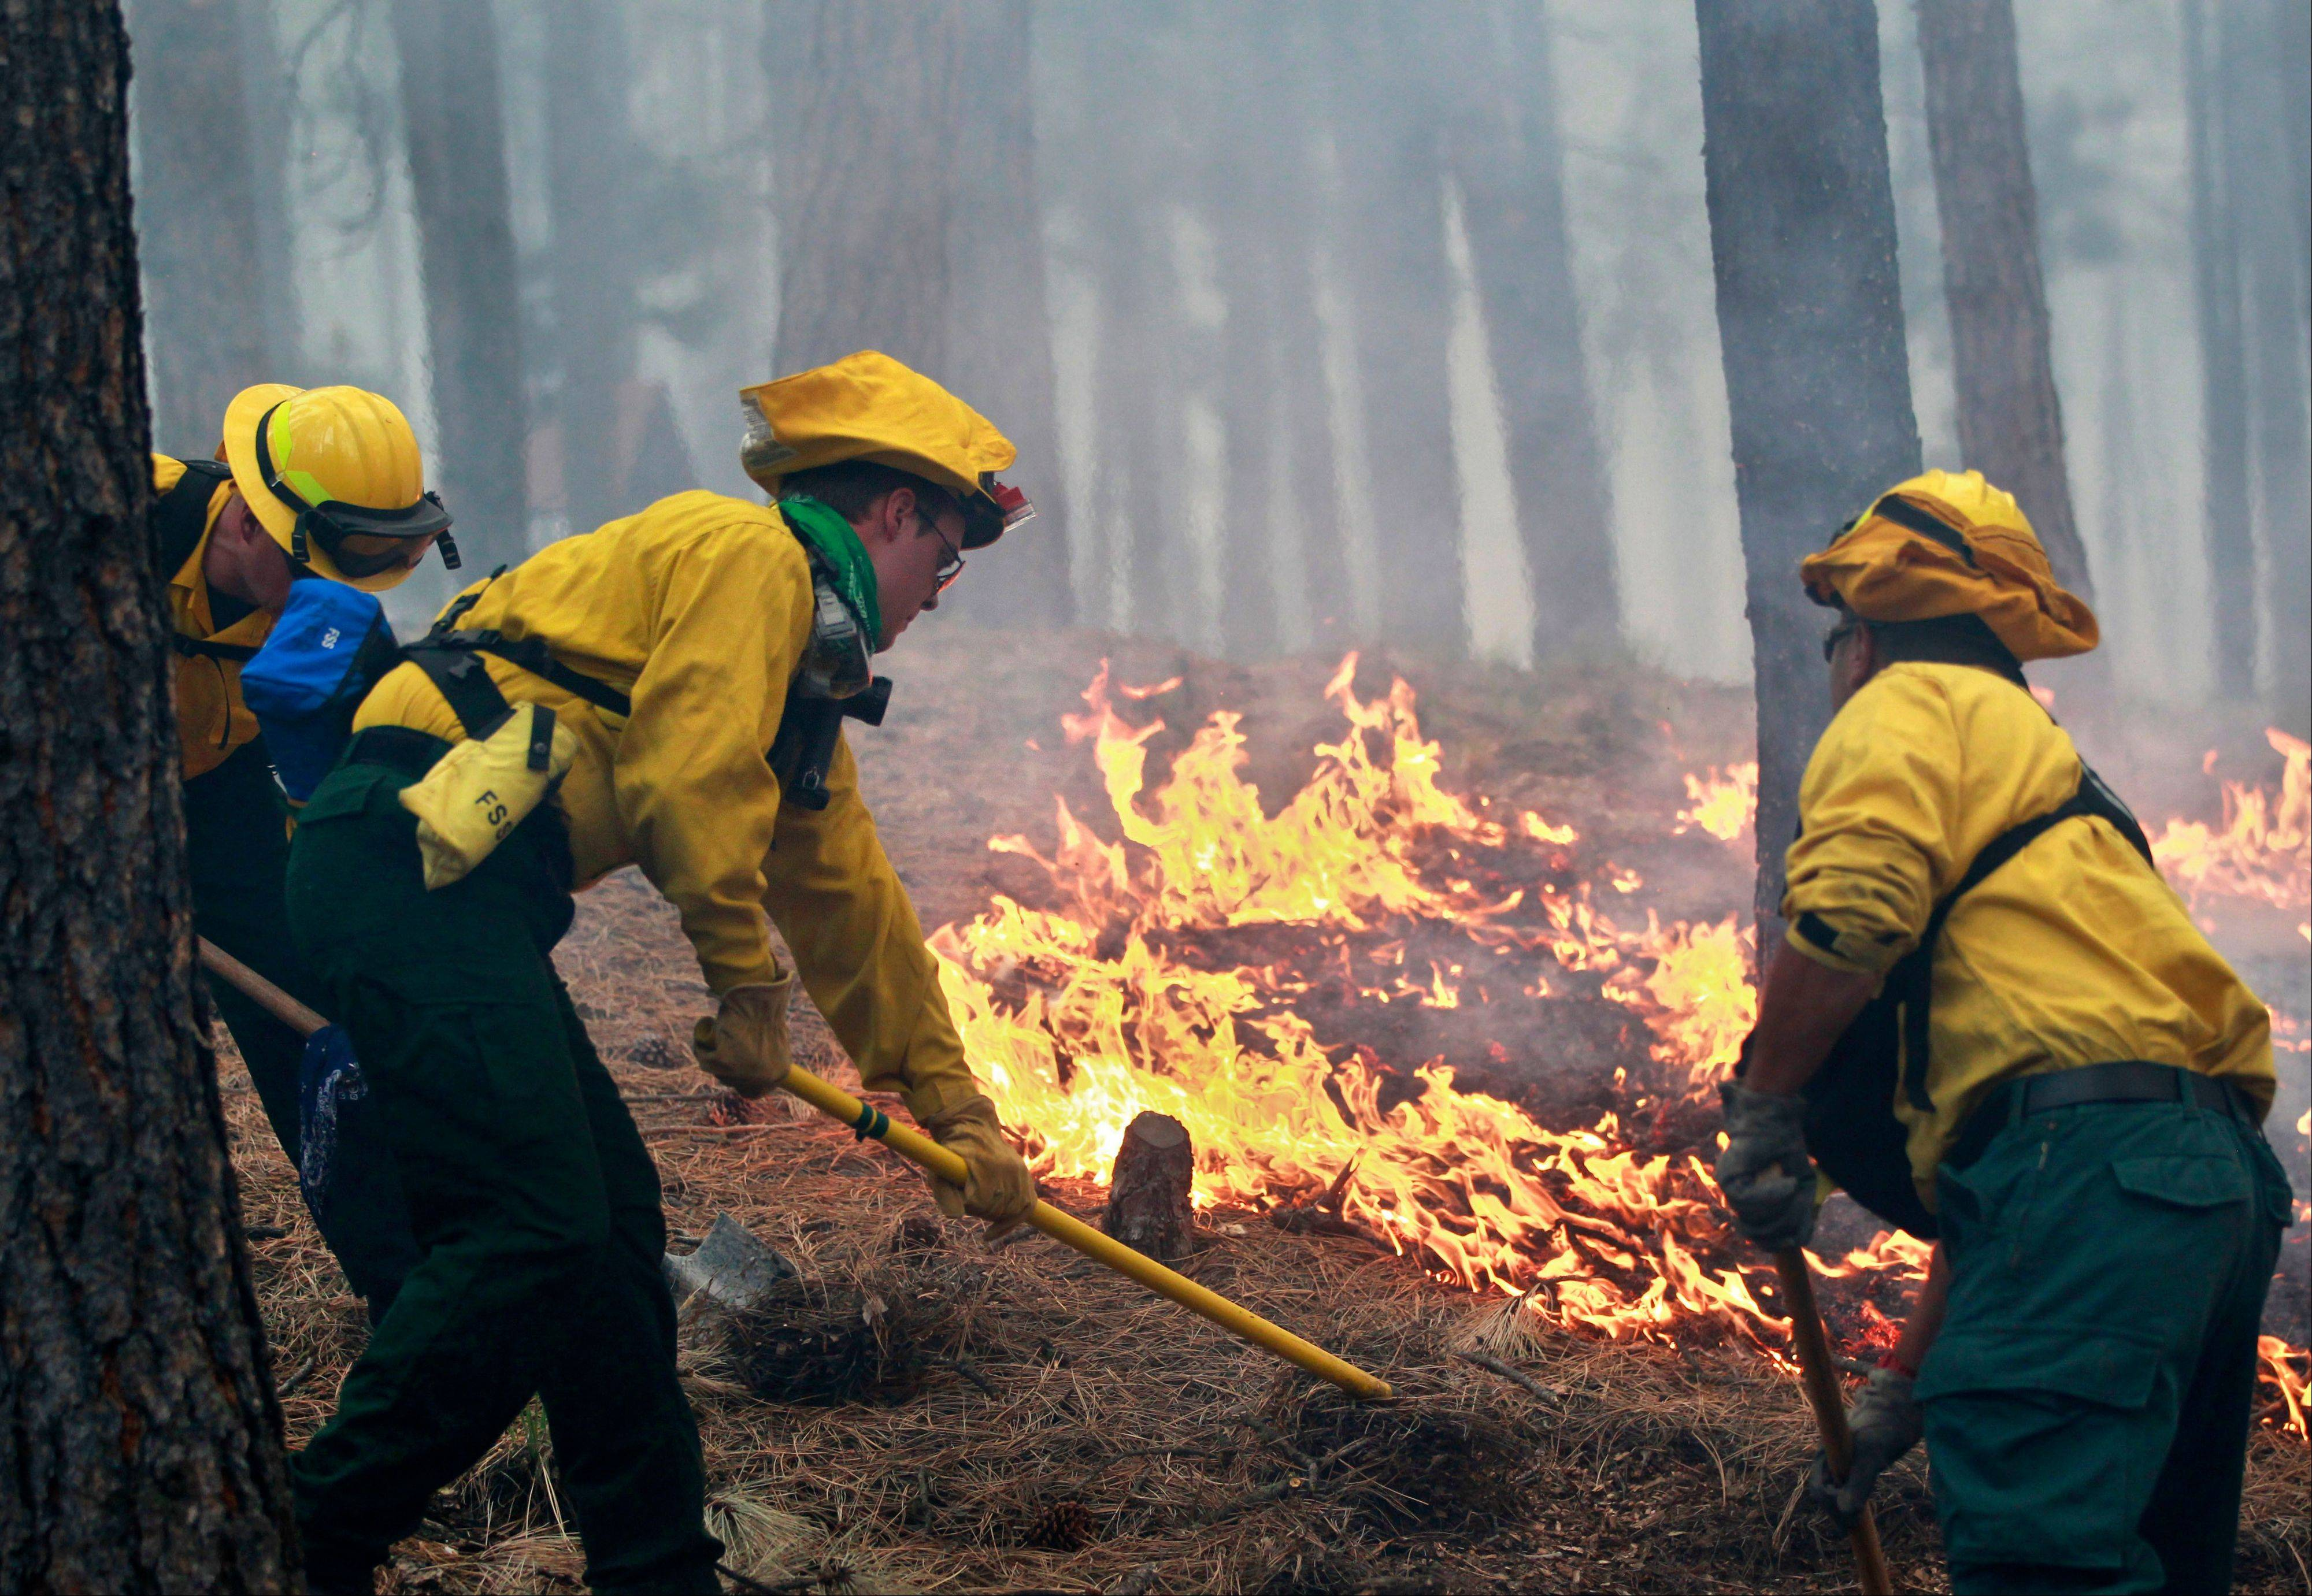 Black Forest Fire Dept. officers burn off natural ground fuel in an evacuated neighborhood, prepping the area for the encroachment of the wildfire in the Black Forest area north of Colorado Springs, Colo., on Wednesday, June 12, 2013. The fire has destroyed at least 360 homes, making it the most destructive in state history.